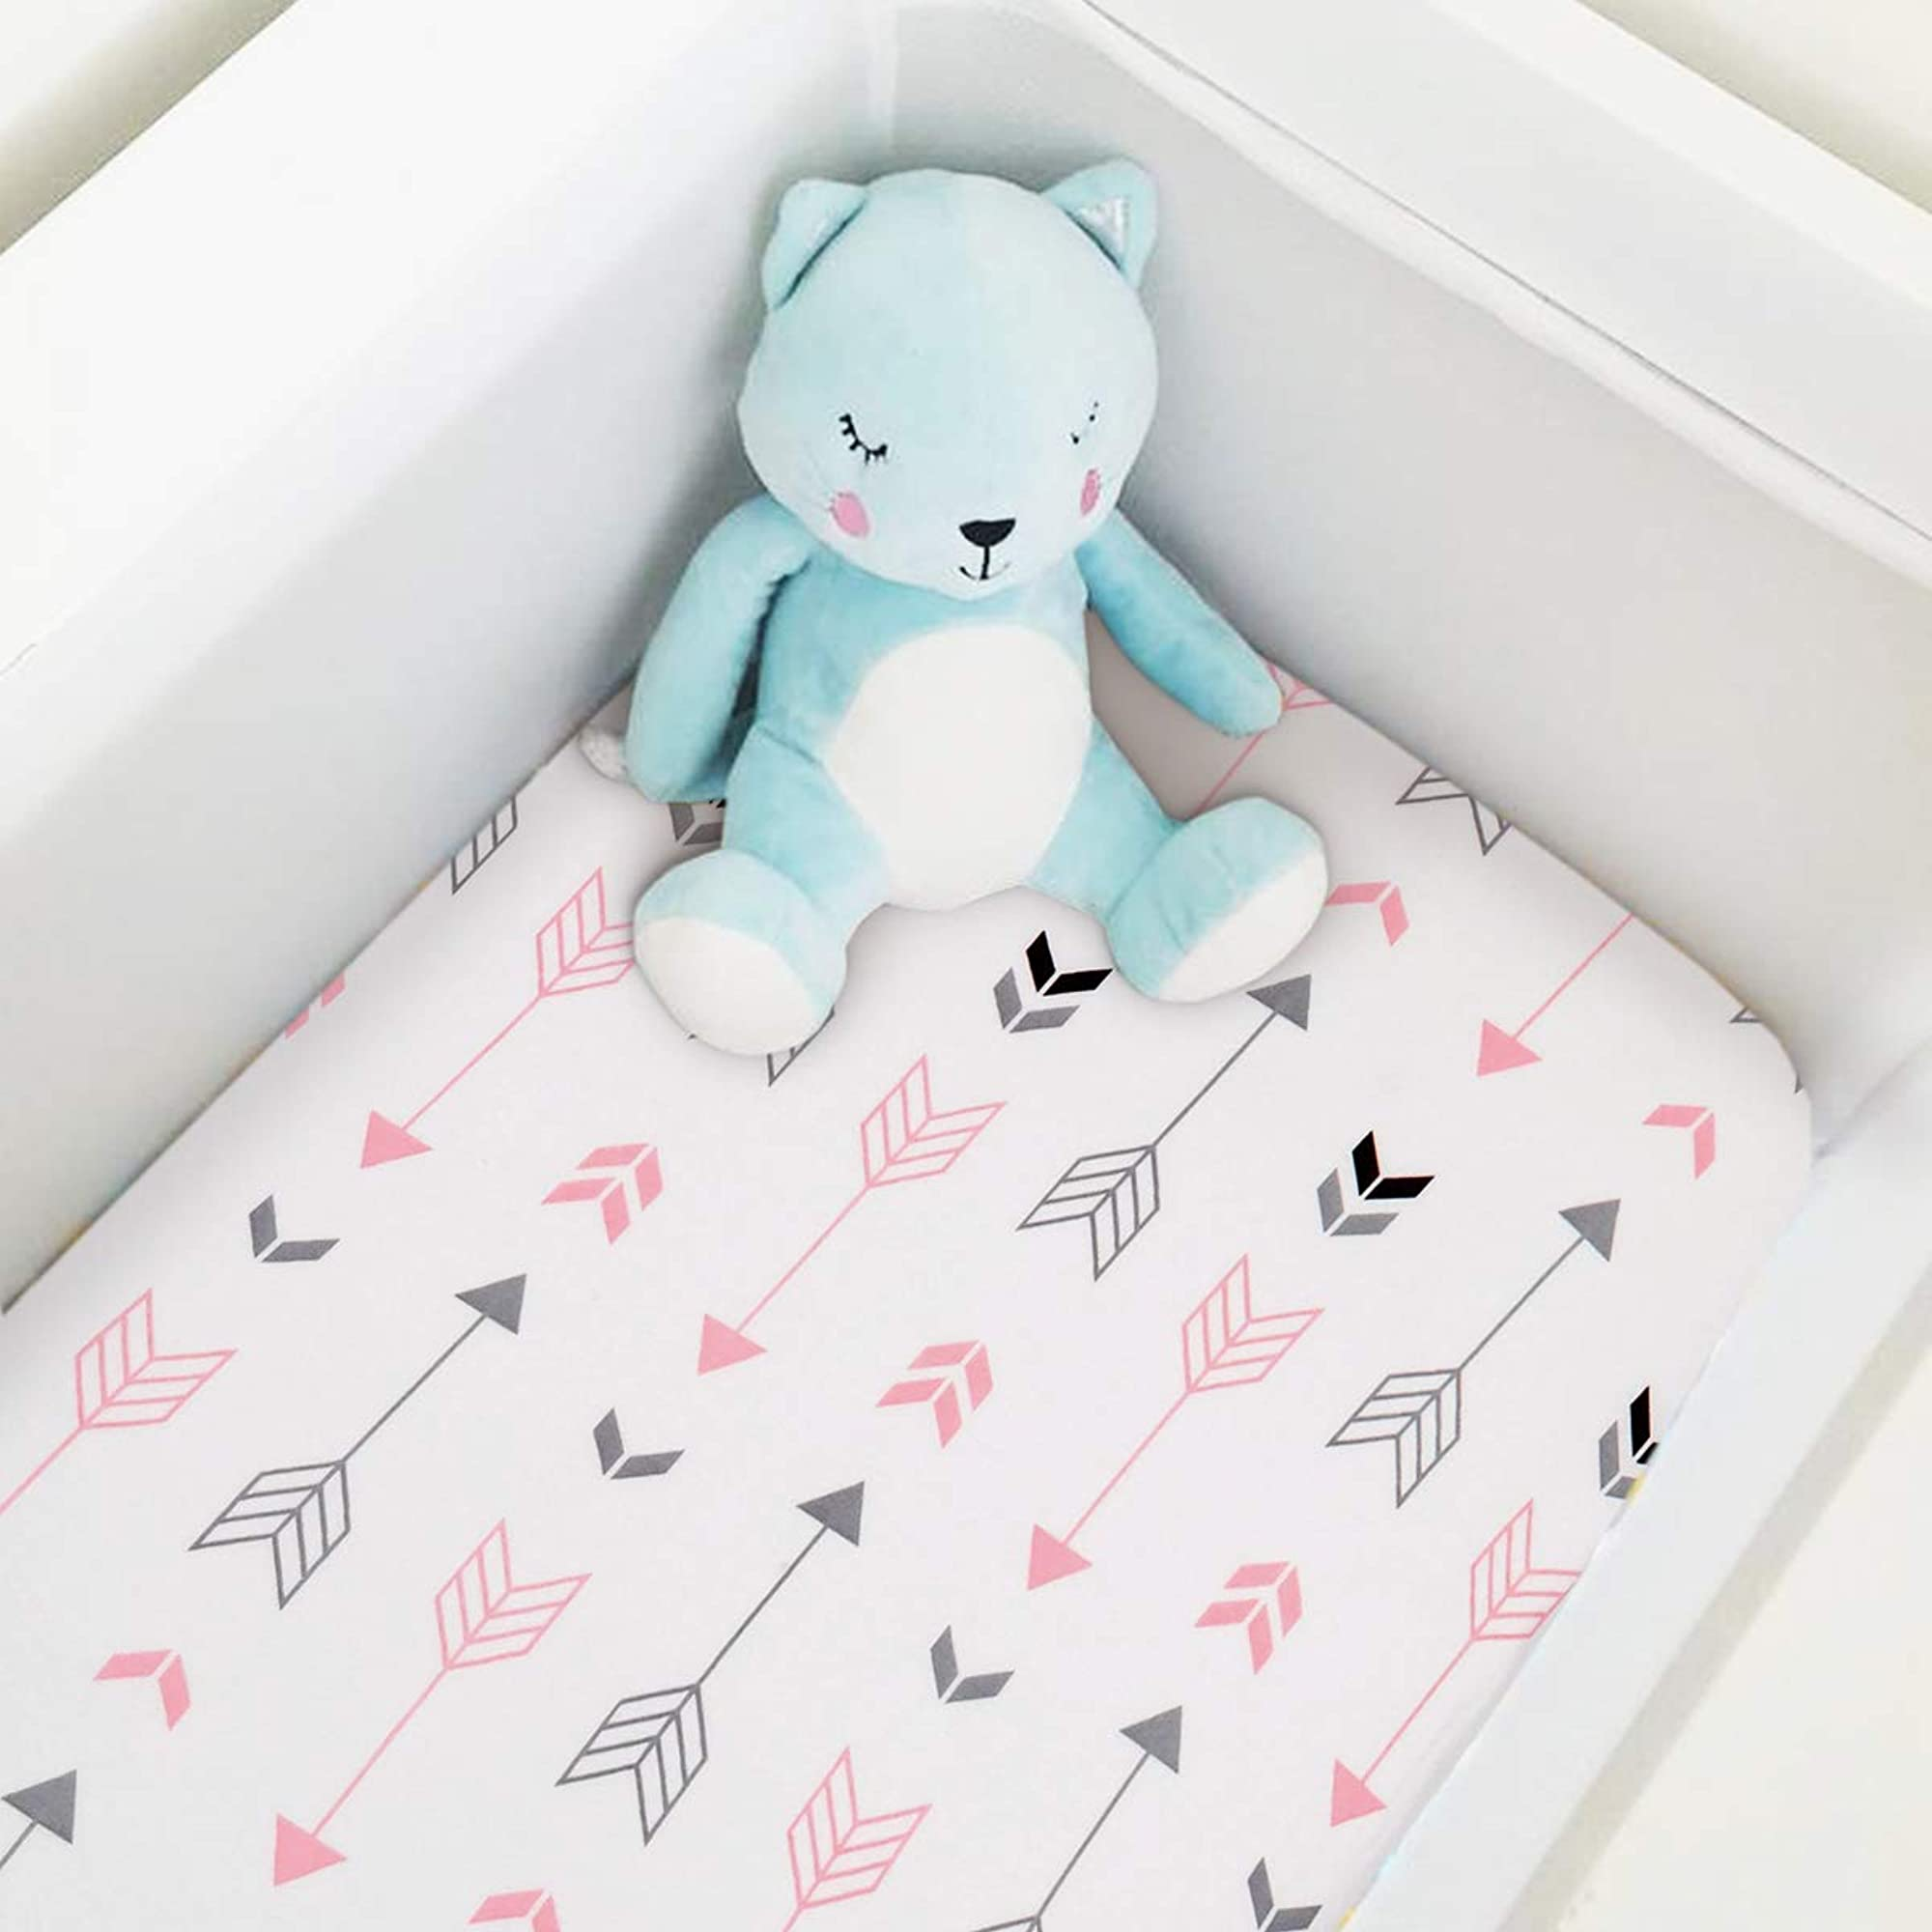 Ultra Soft Portable Crib Mattress Topper